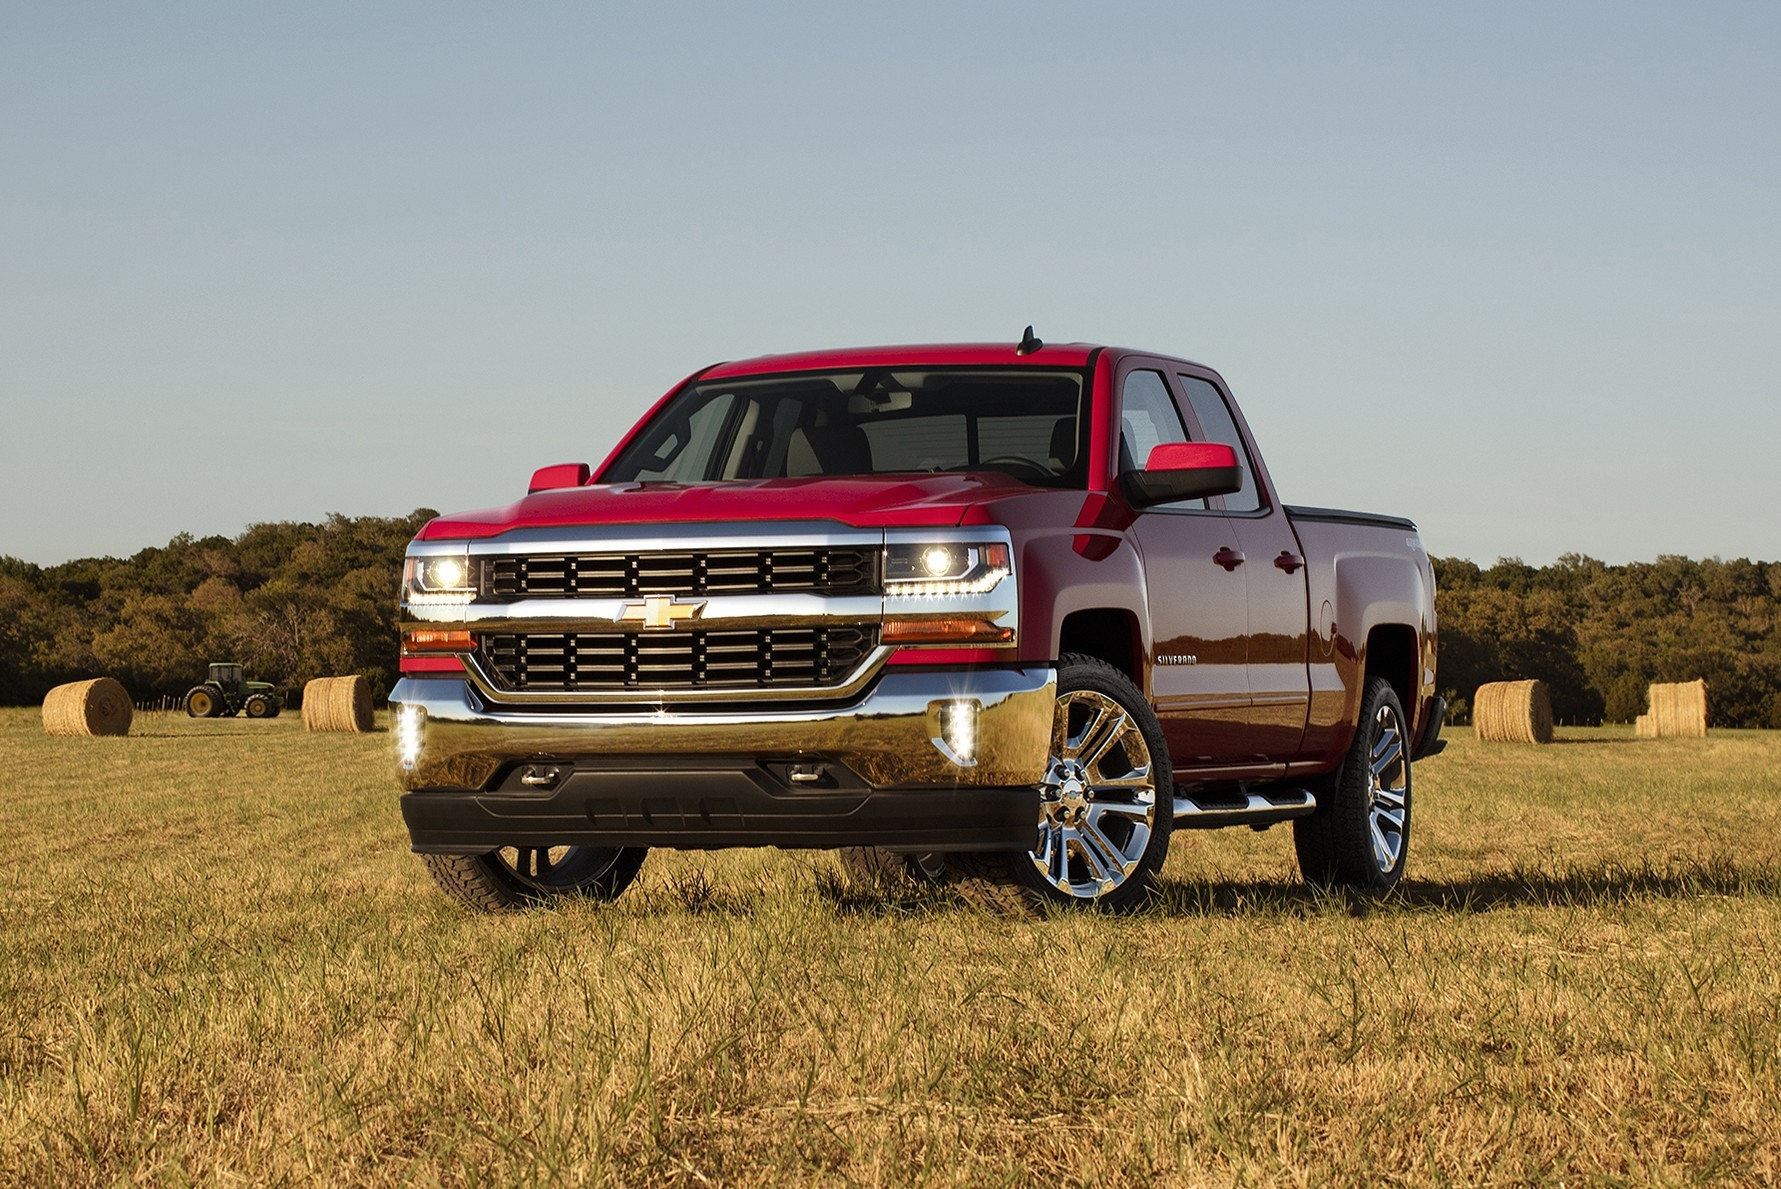 2016 chevrolet silverado gets new styling wider availability of 8 speed auto. Black Bedroom Furniture Sets. Home Design Ideas